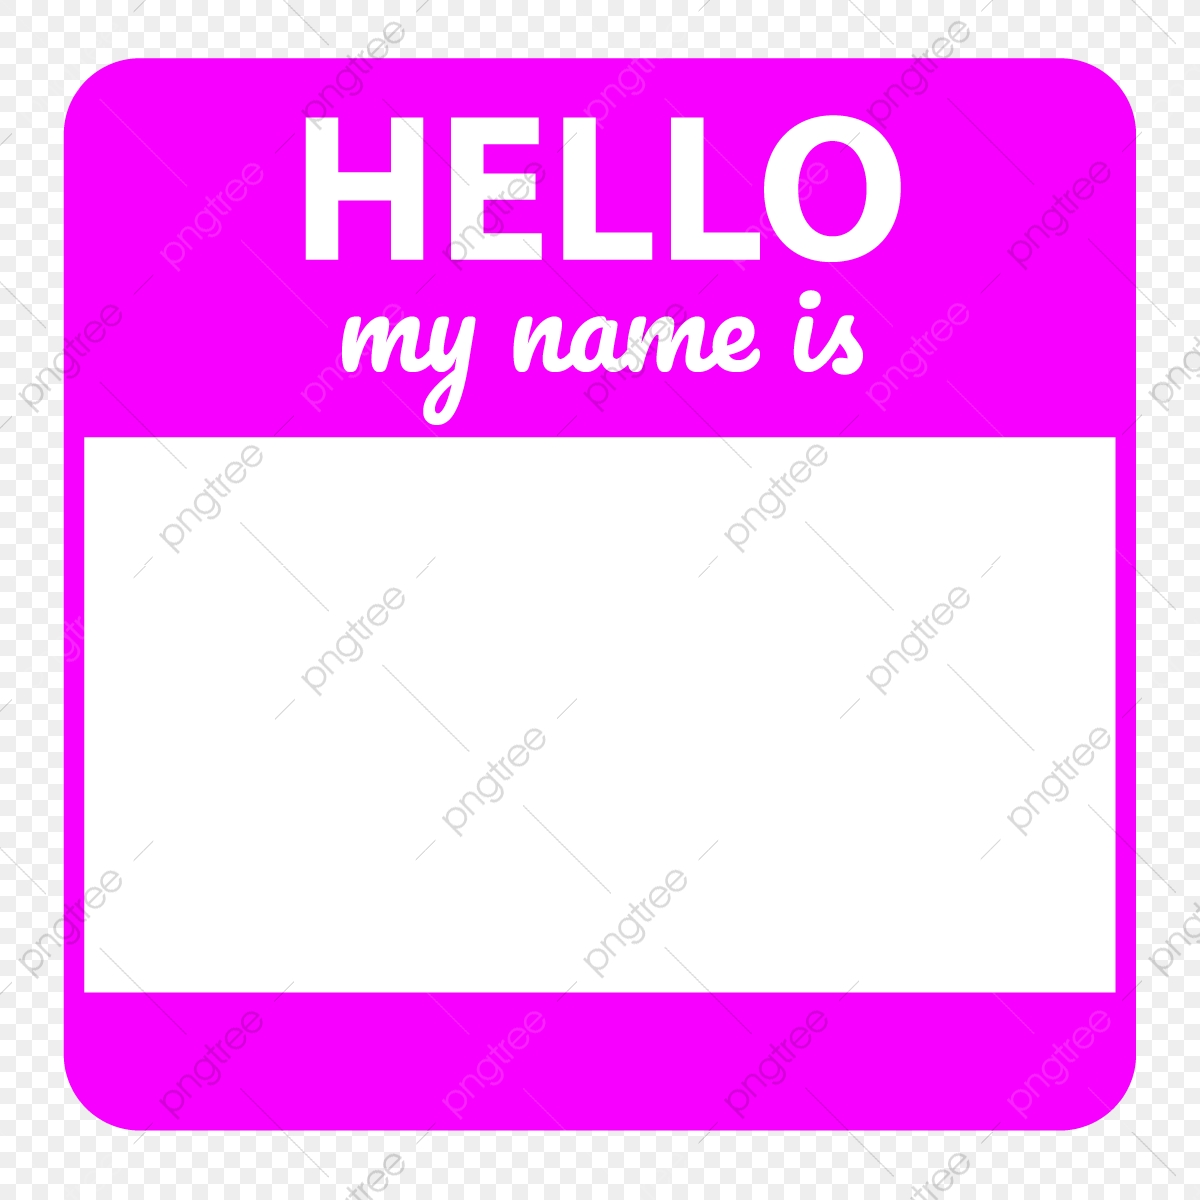 Hello My Name Is Pink Template, White, Hello My Name Is, Hello PNG.